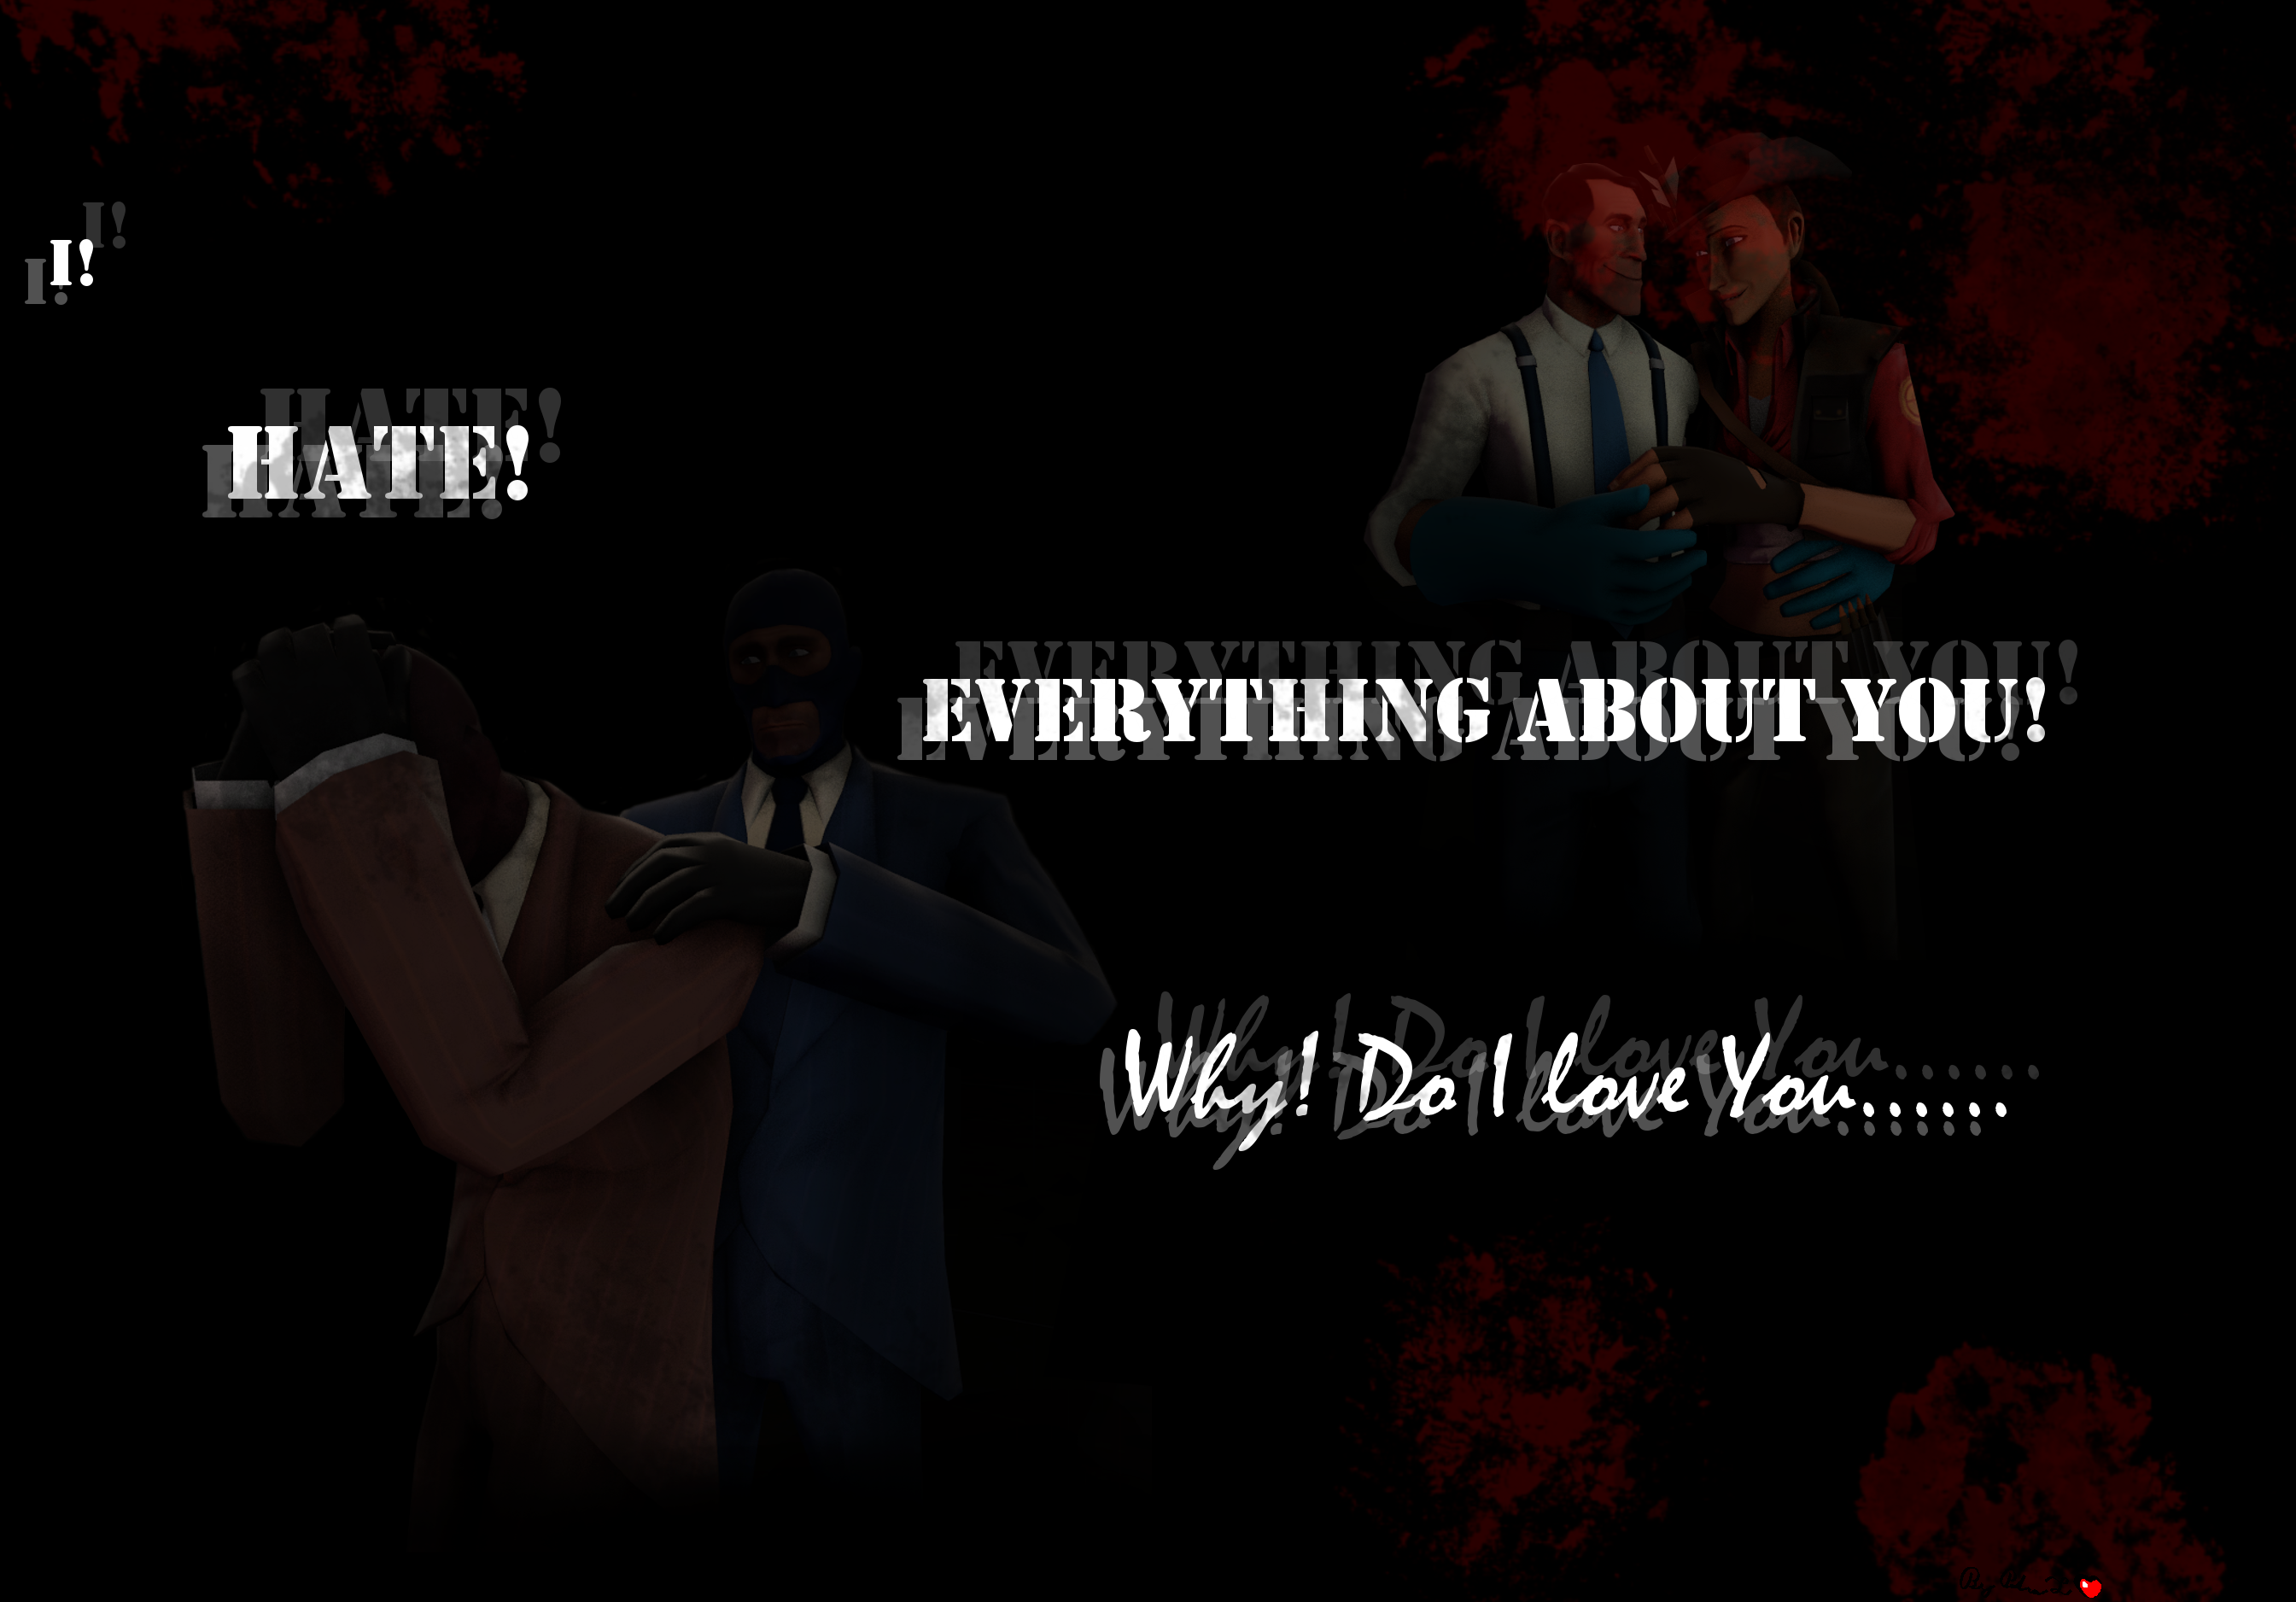 Hate! Everything about you!Why? Do I? Love you? by Petra-K-Z on ... I Hate Everything About You Why Do I Love You